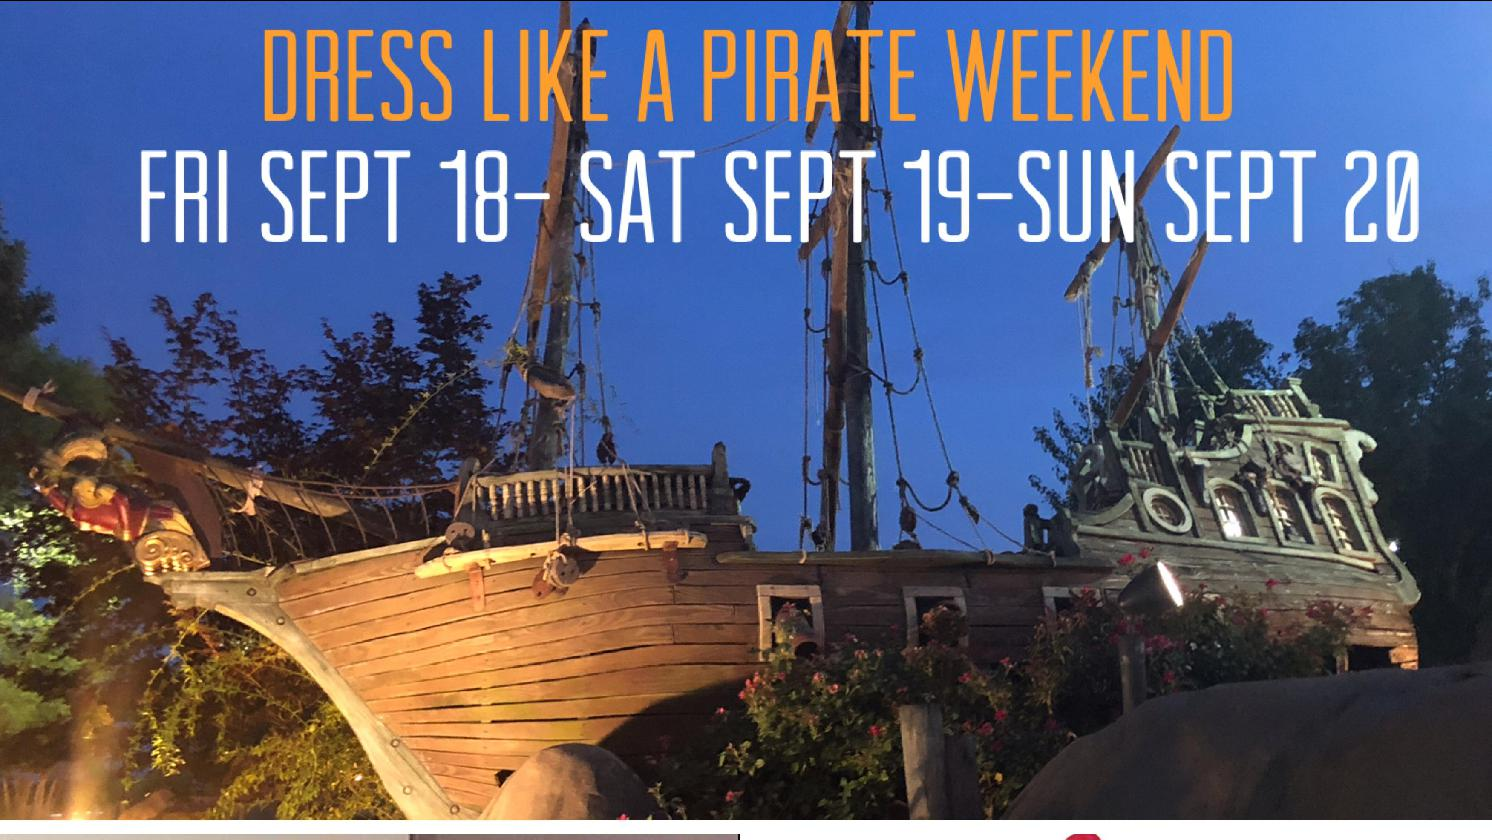 Dress & Talk Like a Pirate Weekend-Aurora Cineplex 9/18-20th